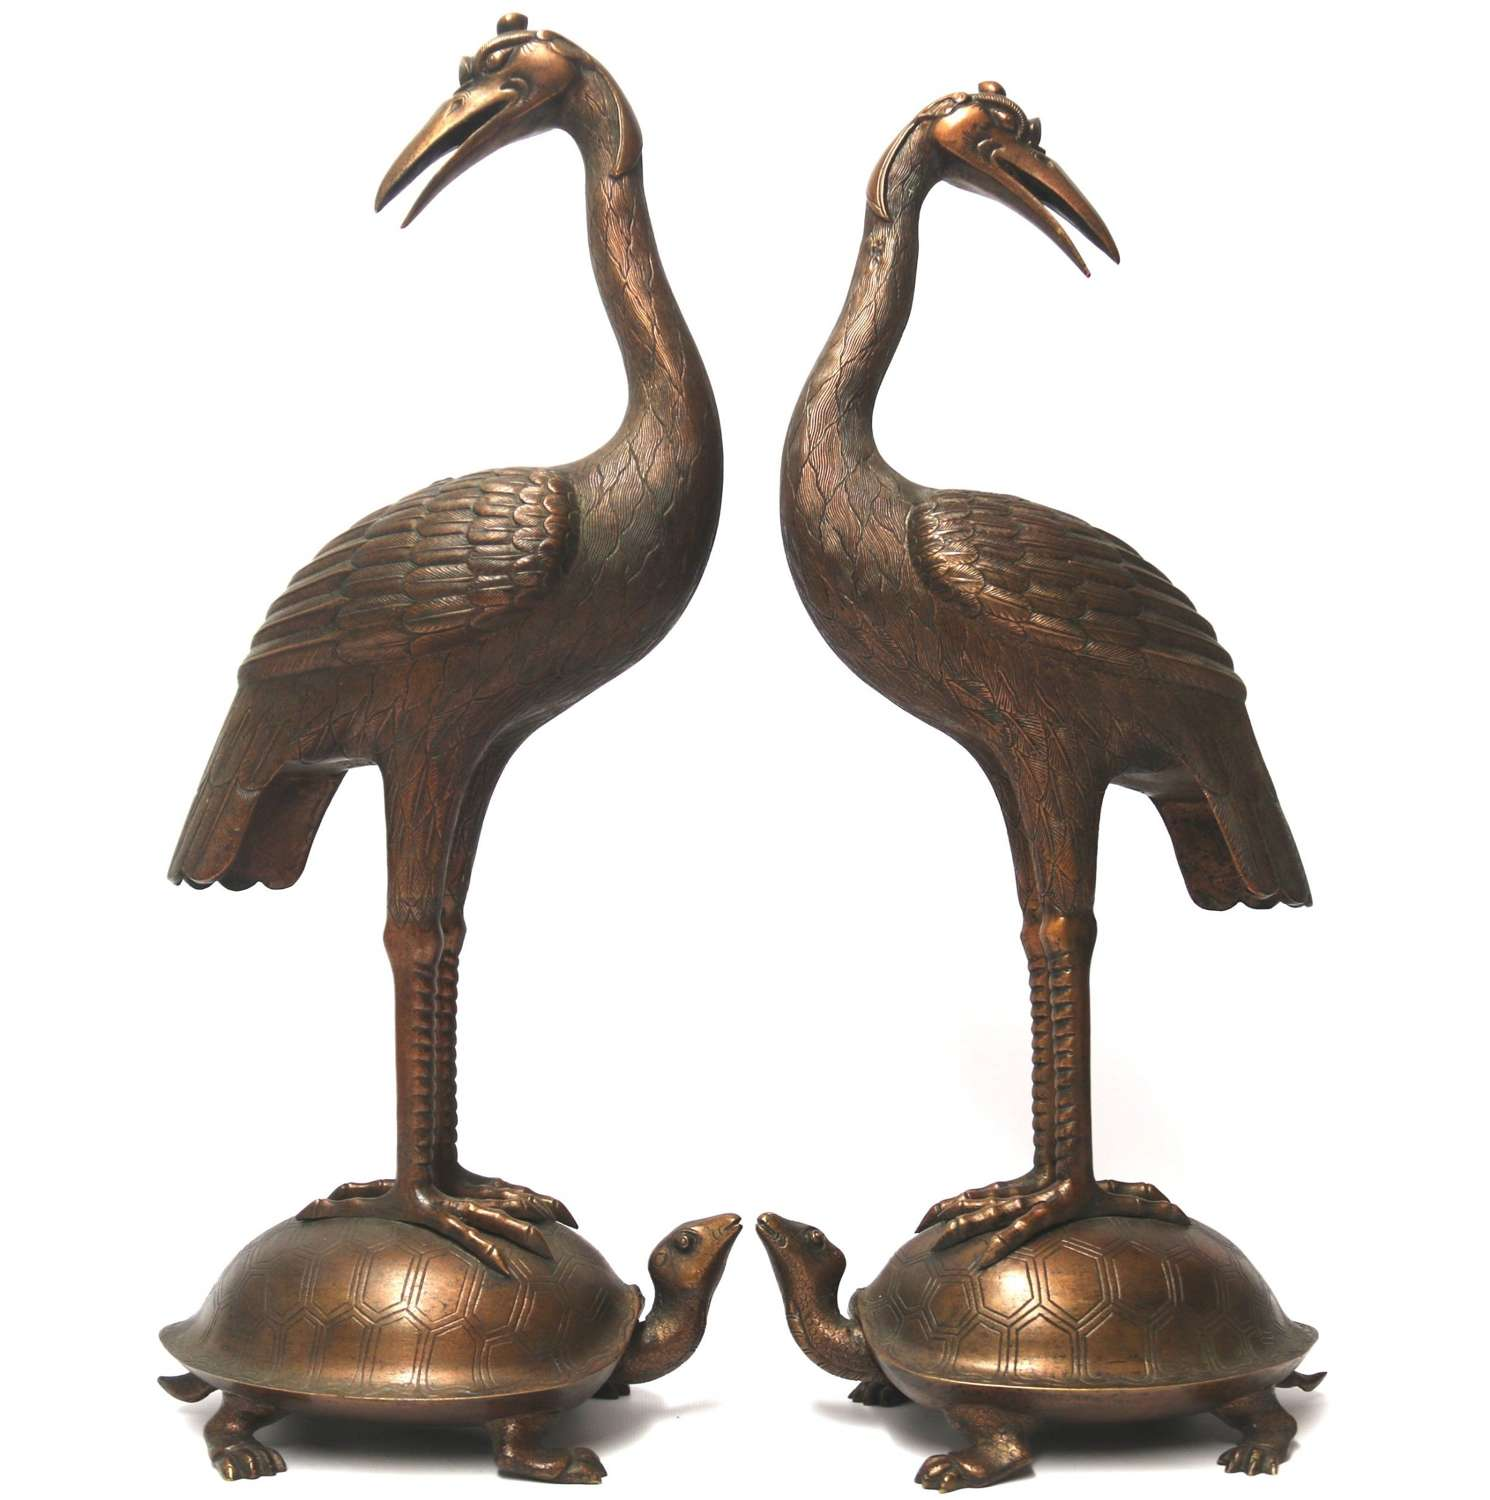 A Large Pair Of Japanese Bronze Storks